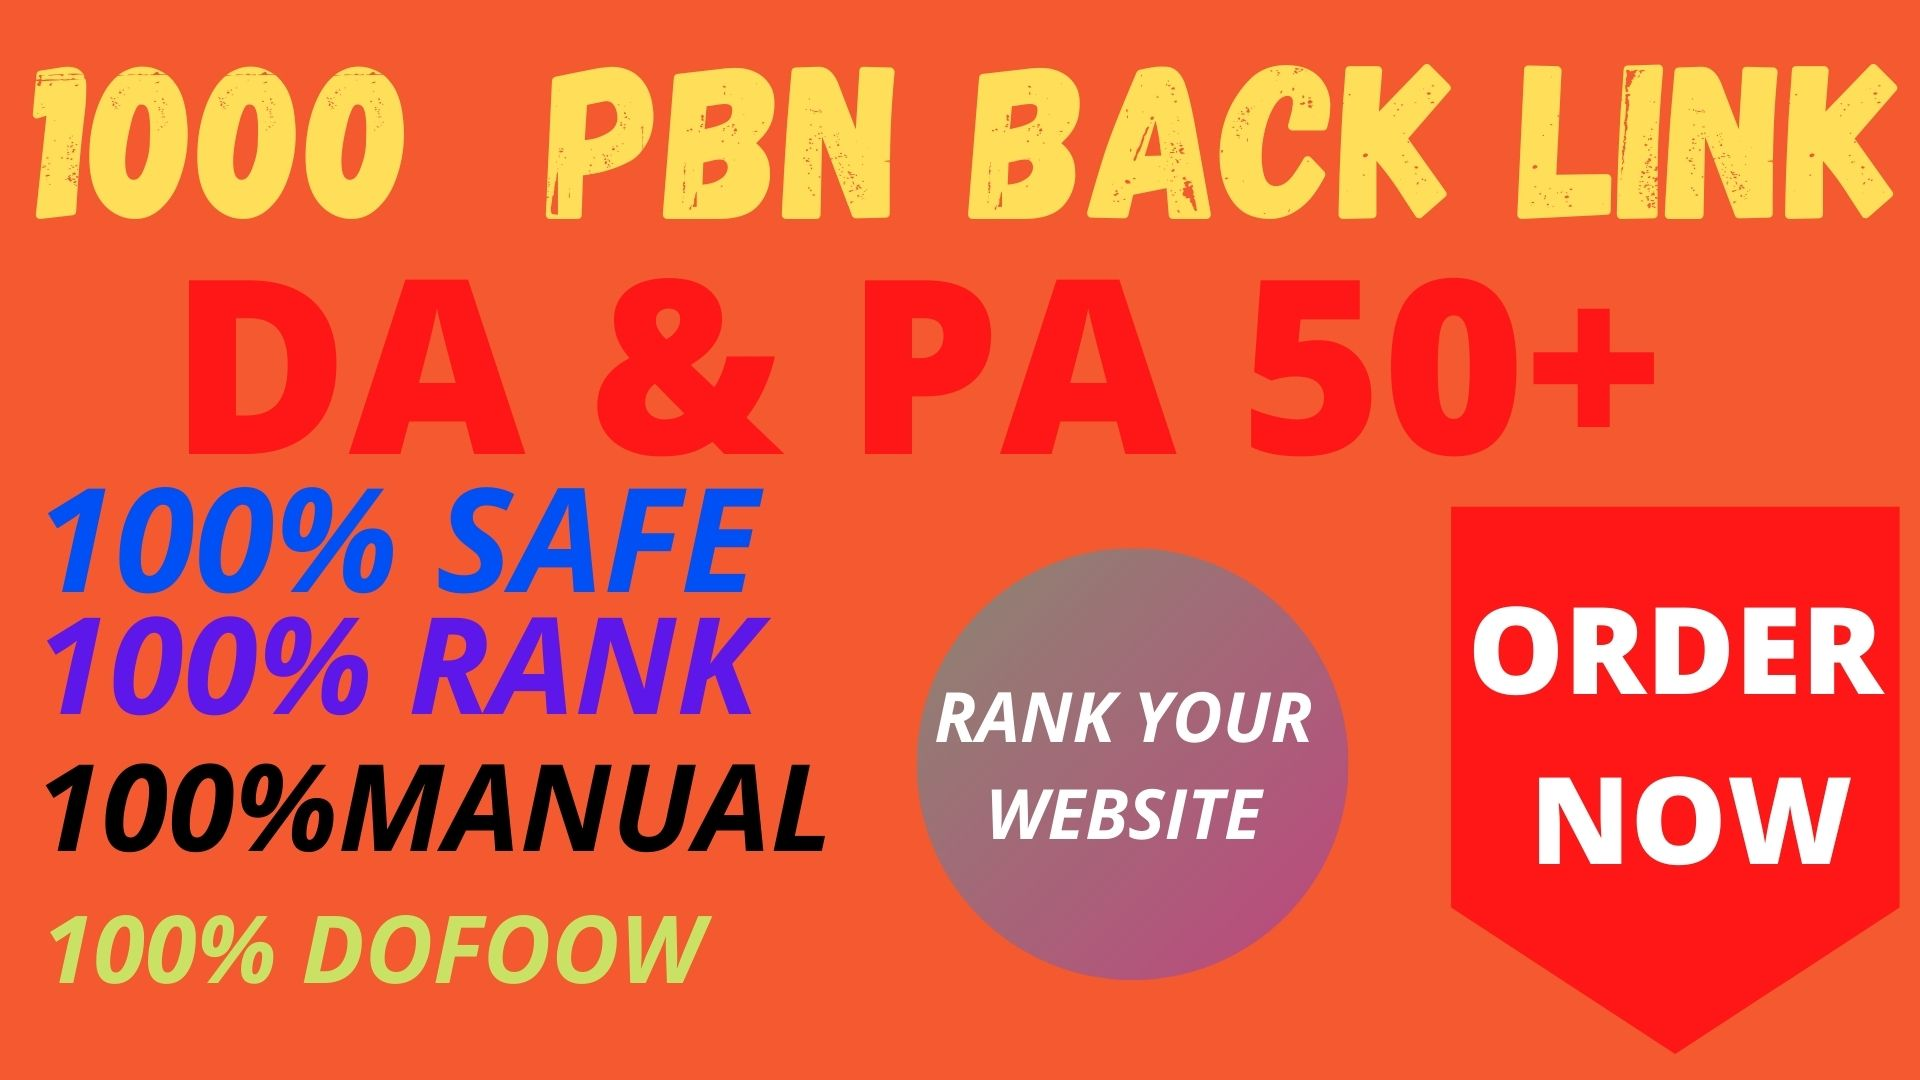 GET 1000+ High PBN Backlink Rank your Google site. We give you always a better solution.